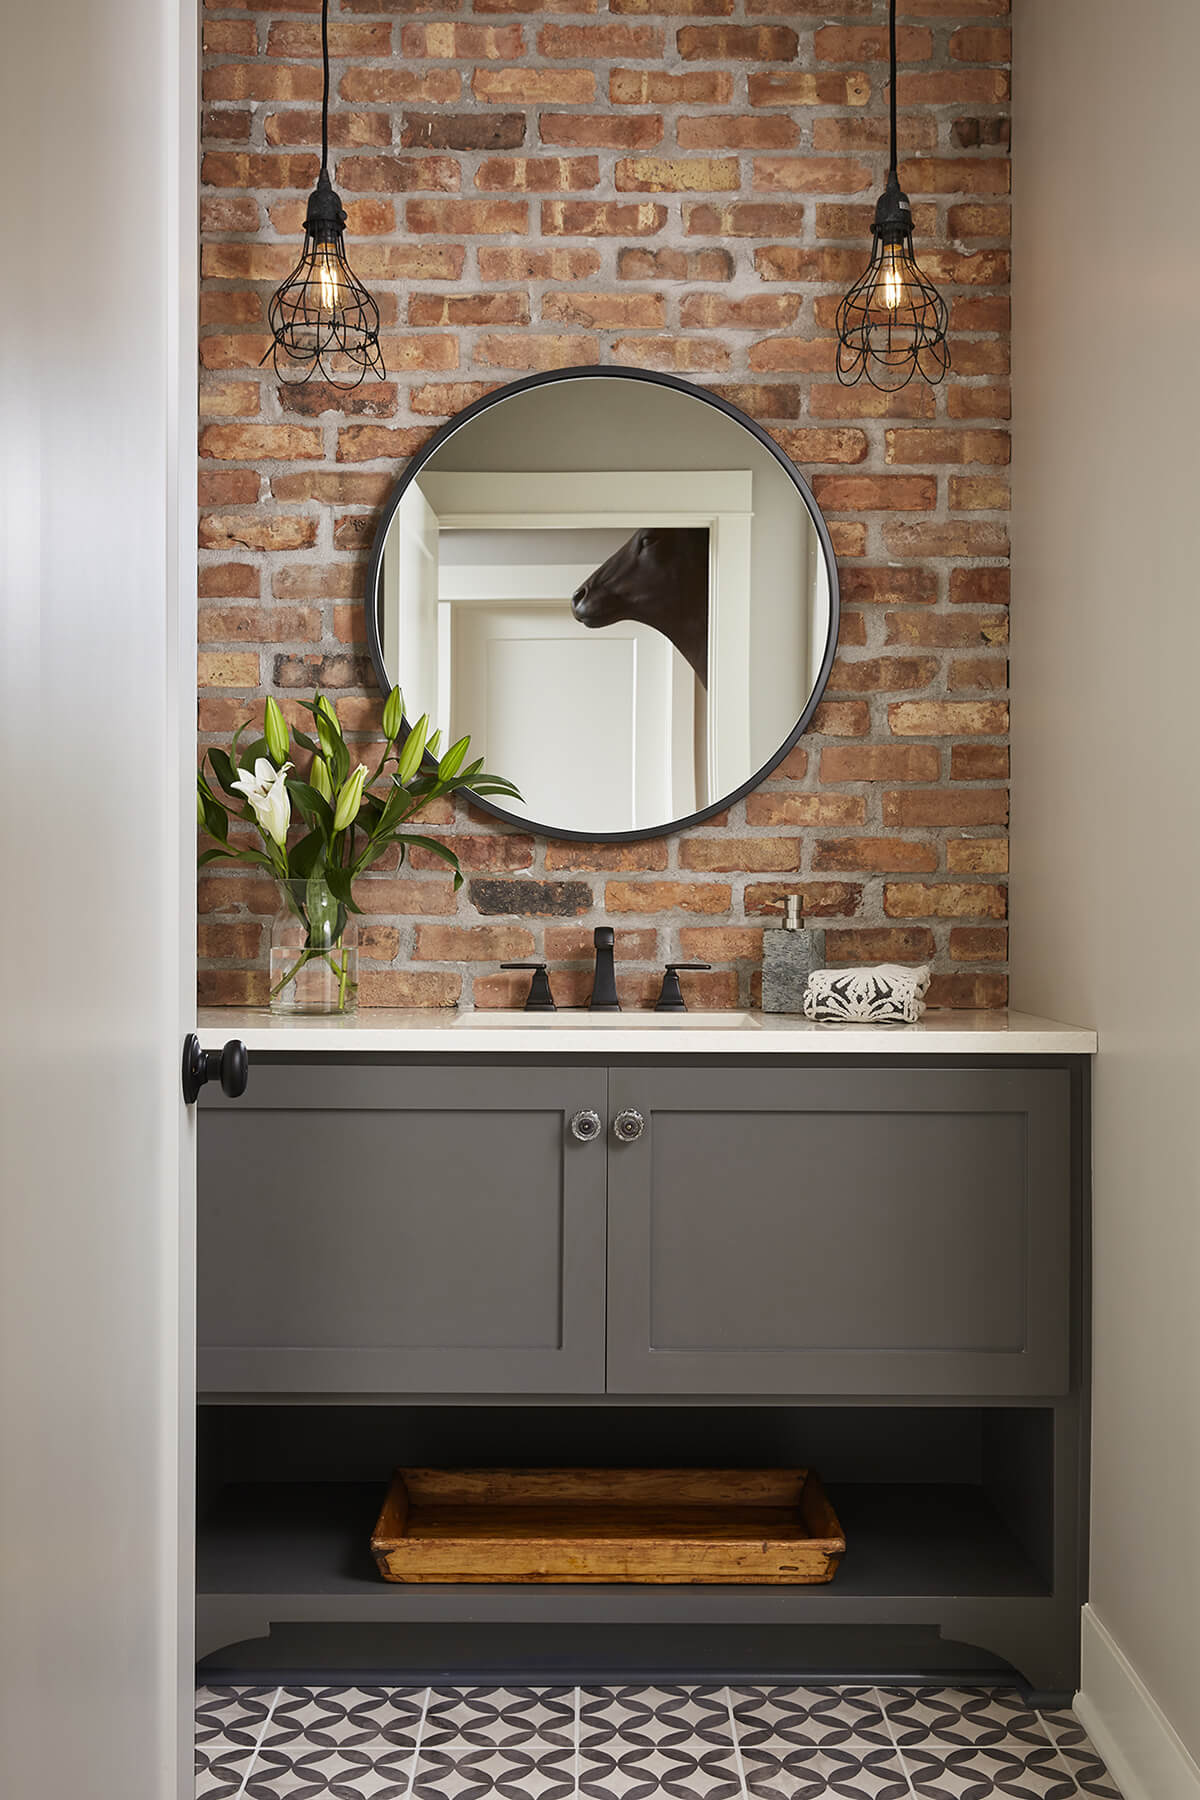 Exposed Brick for a Statement Piece in the Bathroom